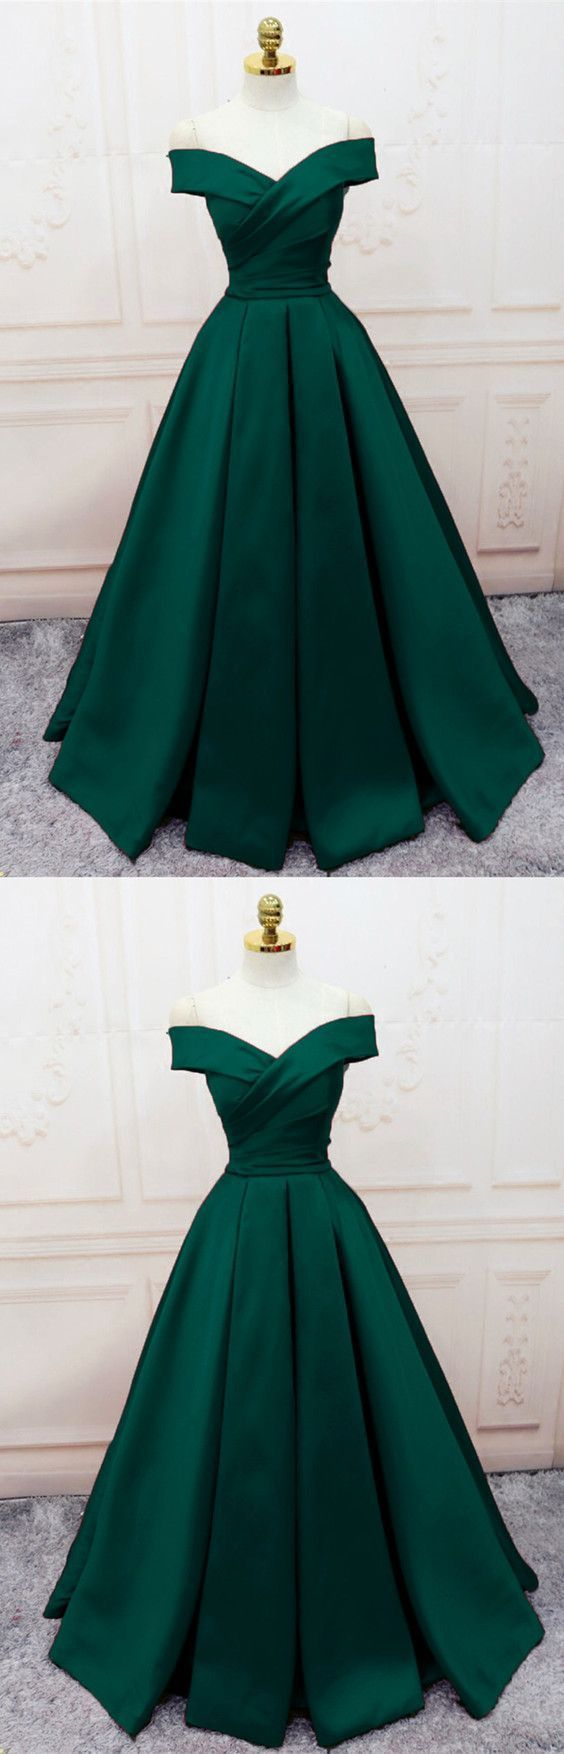 Charming Dark Green Satin Long Party Dress 2020, Off Shoulder Evening Gown